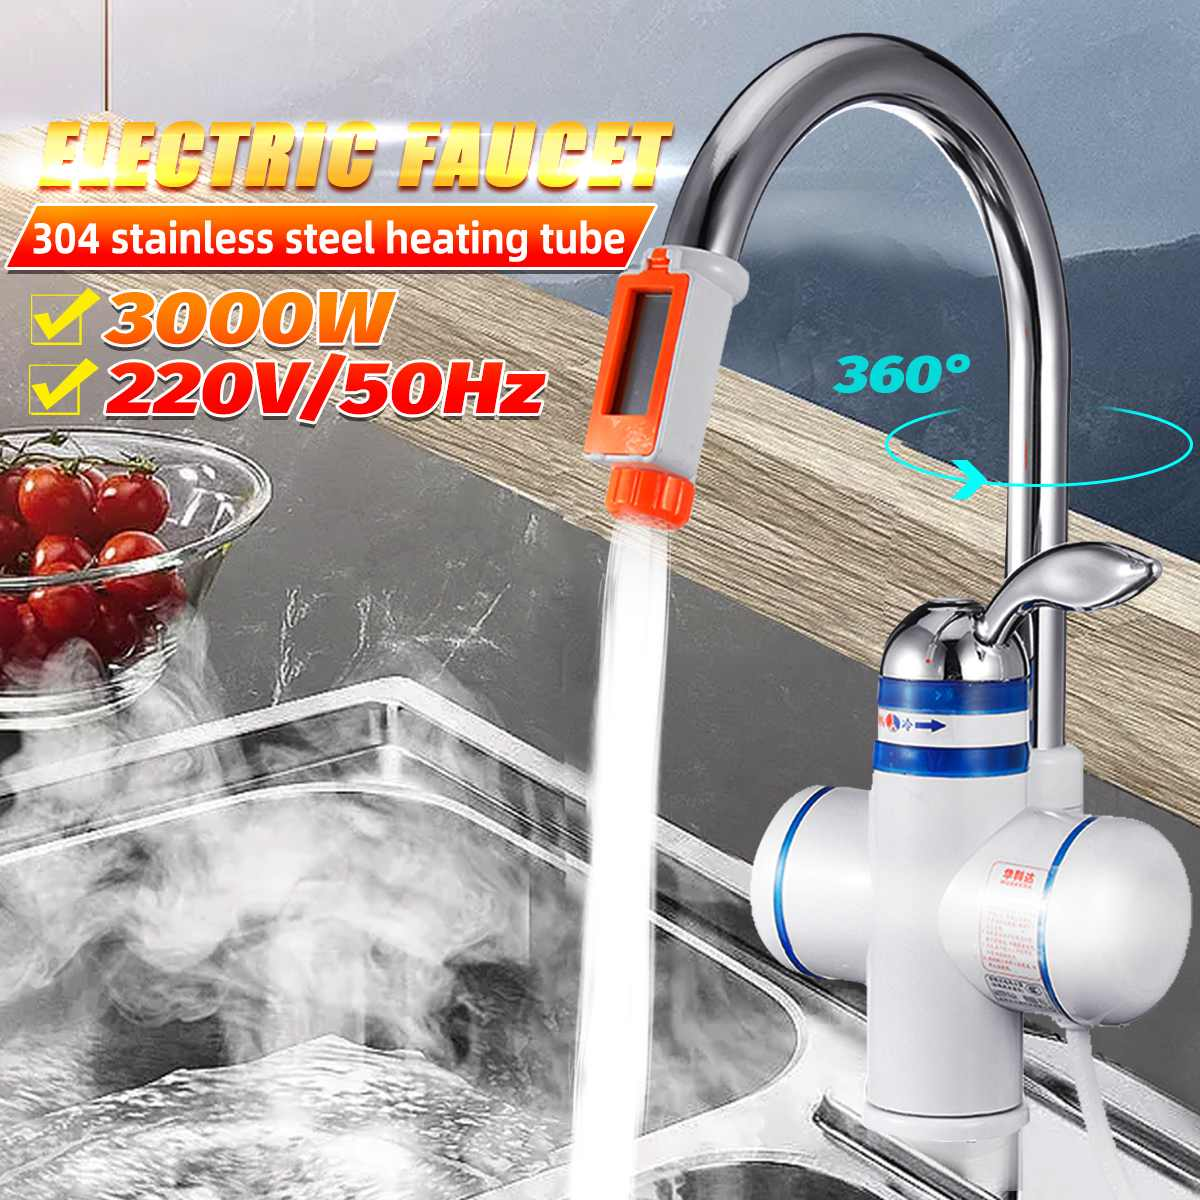 Water Heater Kitchen Instant Heating Tap Electric Water Heaters Electric Faucet Temperature Display